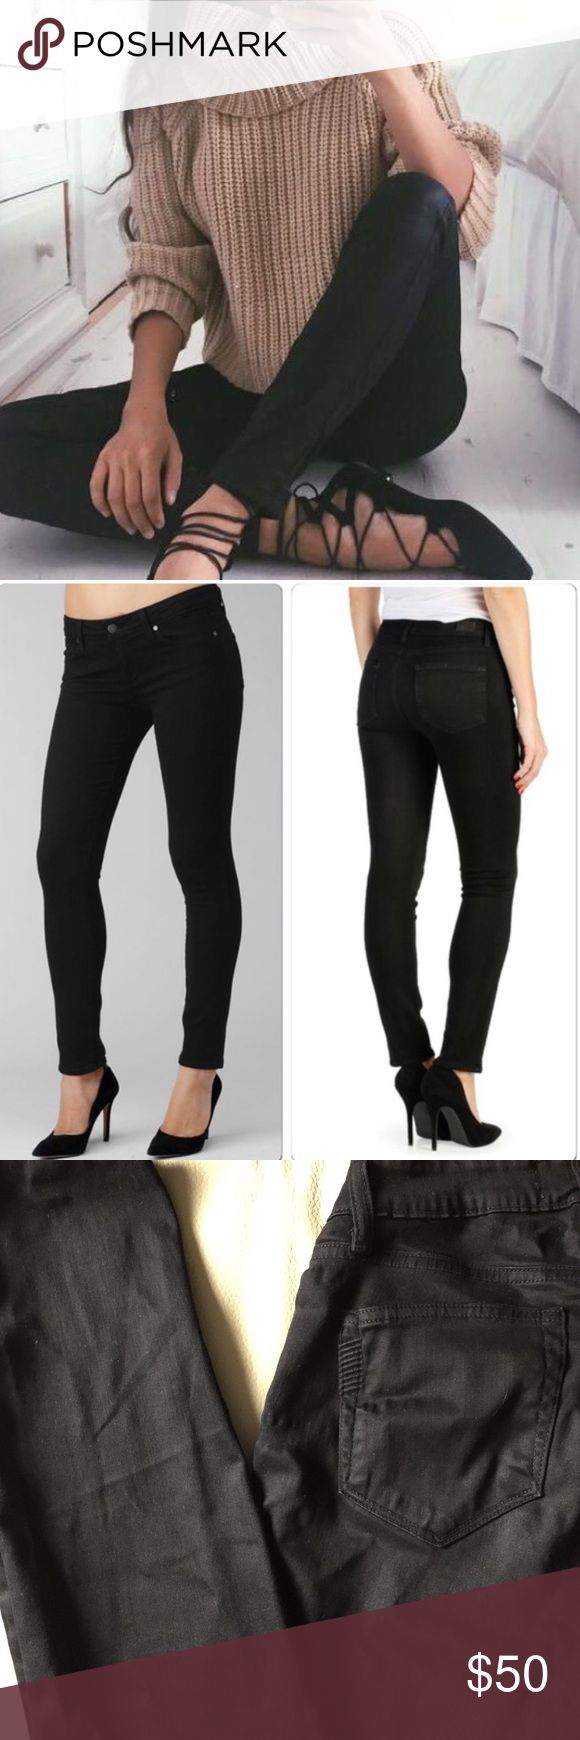 💕Paige Premium Denim💕Black Slim Skinny Jeans💕 EEUC, black skinny jeans by Paige Premium Denim. Purchased at Nordstrom's and worn a handful of times for work/going out! Love these jeans but slightly too big for me. Soft velveteen black denim material.                                   ✅Brand: Paige Premium Denim                          ✅Size: 25                                                                   ✅Style: Verdugo Ultra Skinny Paige Jeans Jeans Skinny